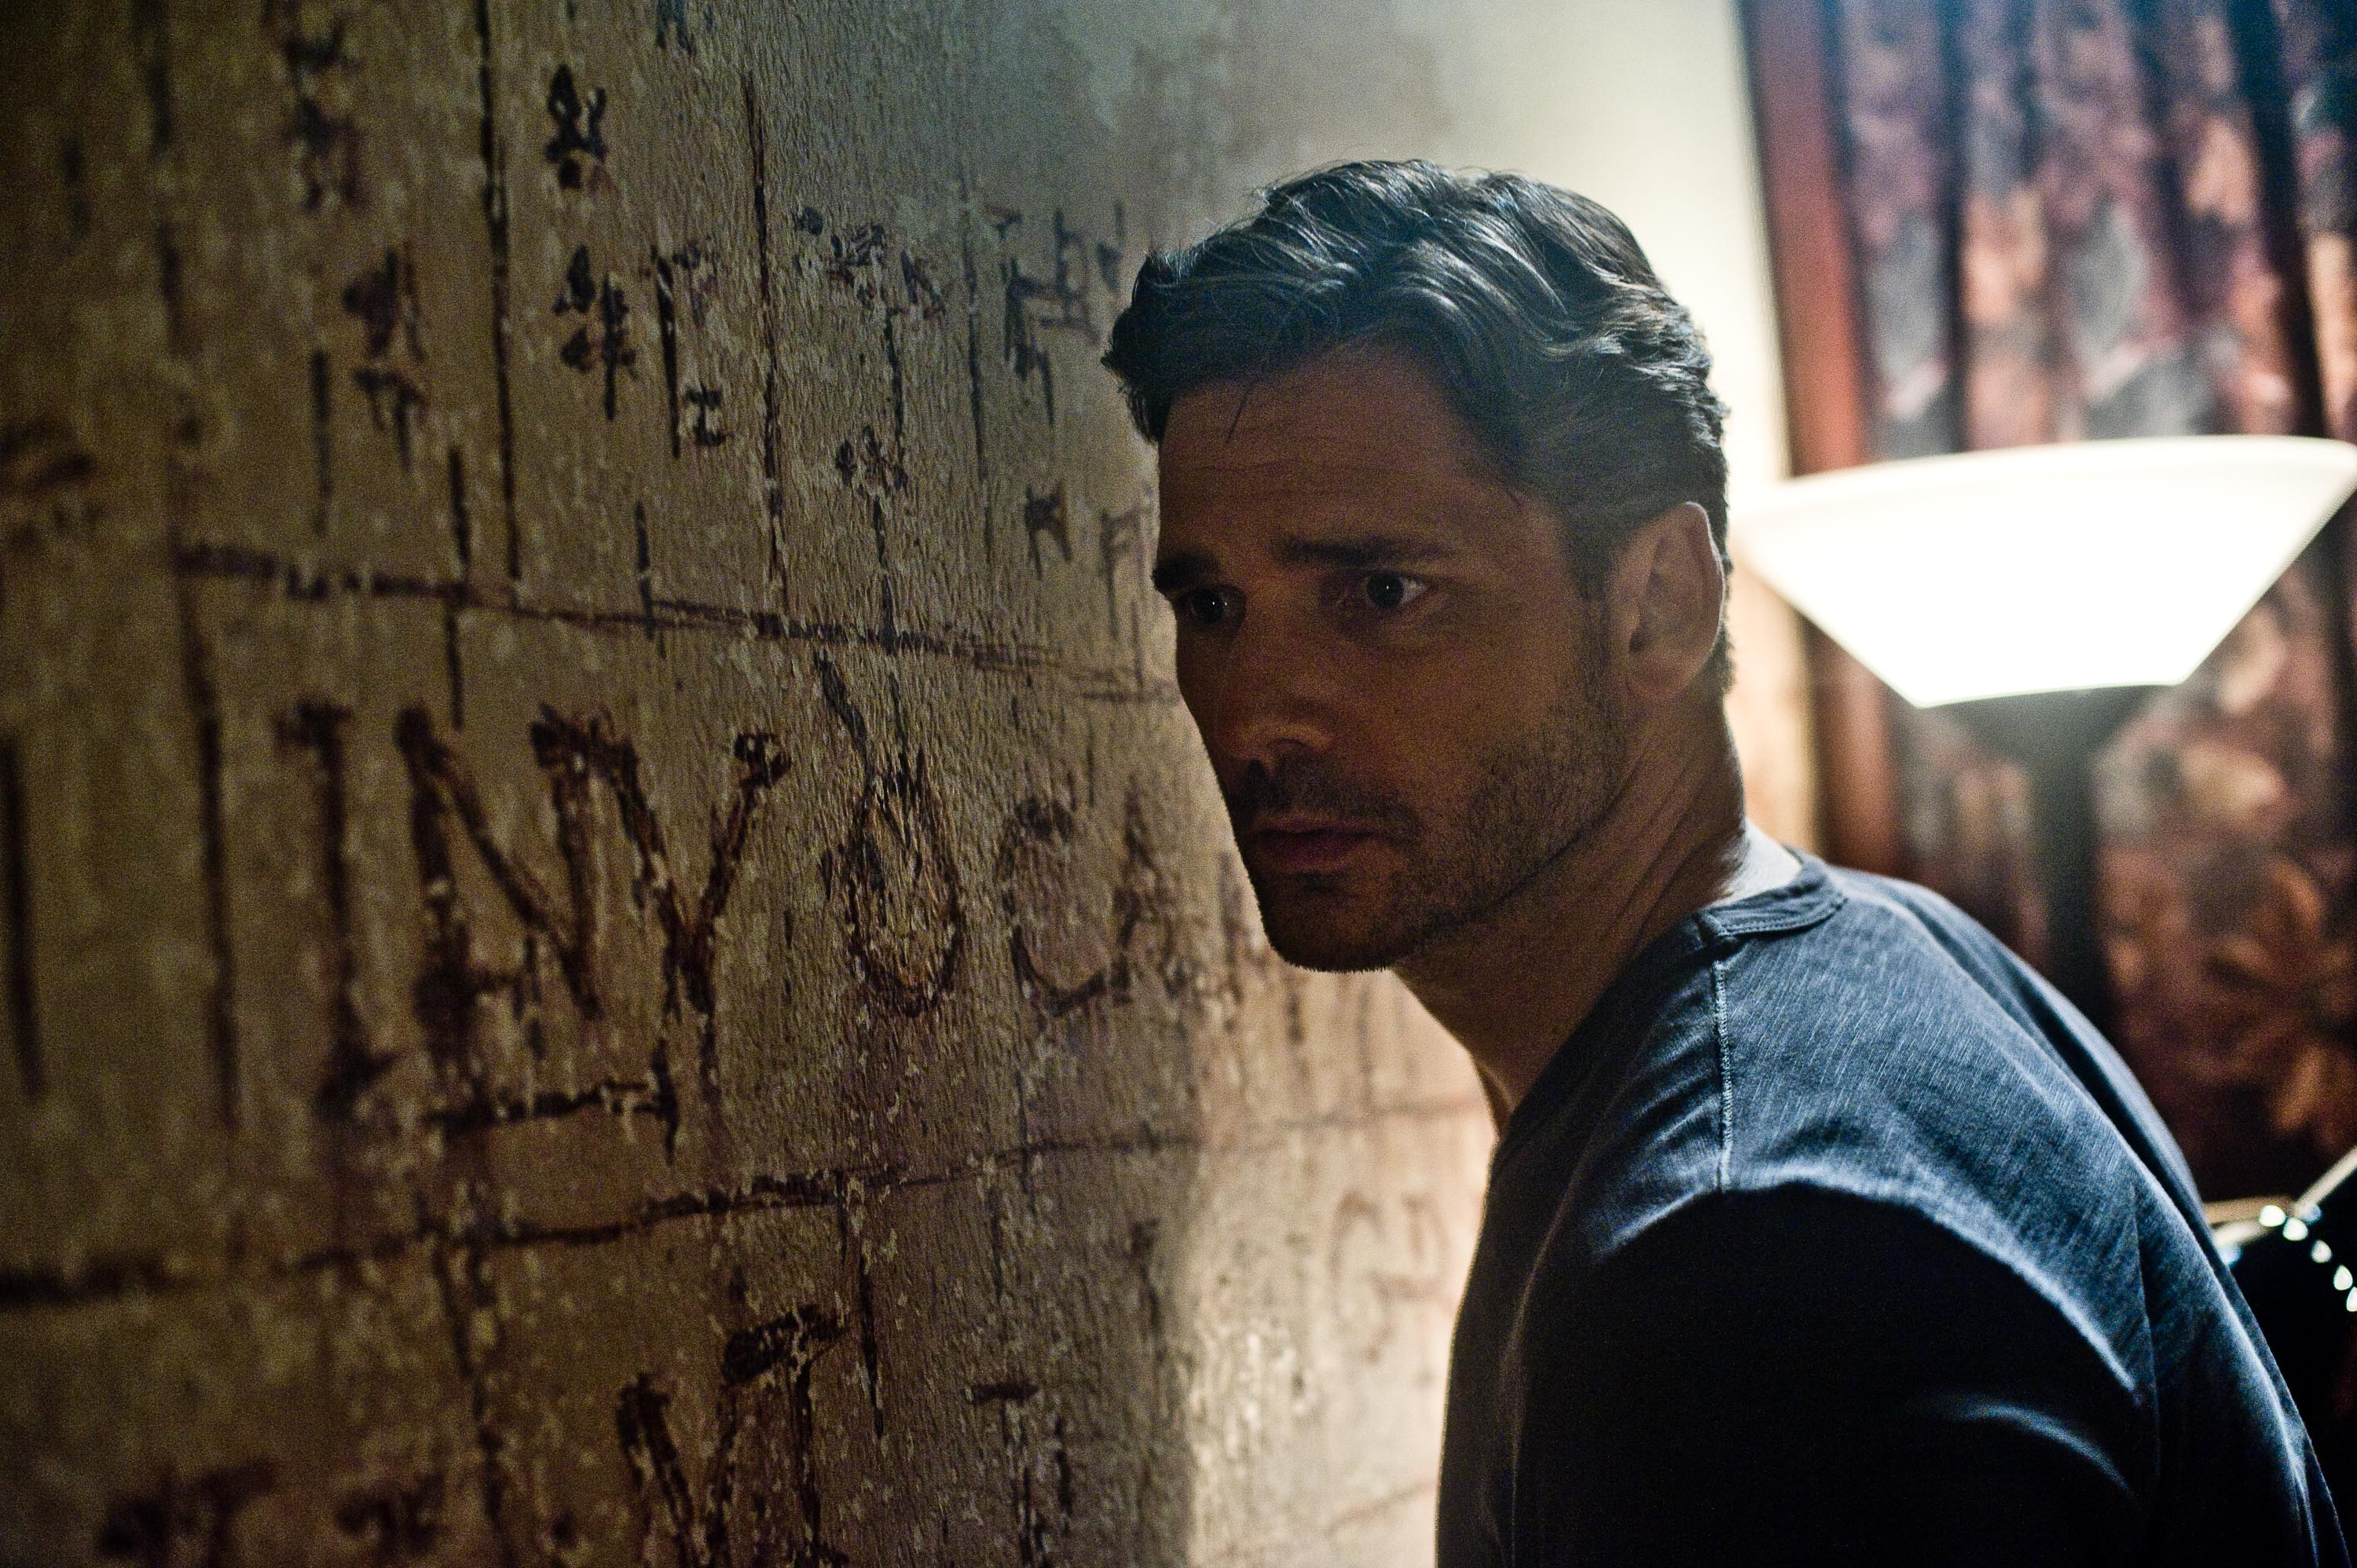 Deliver-Us-from-Evil-Official-Poster-Banner-PROMO-PHOTO-10ABRIL2014